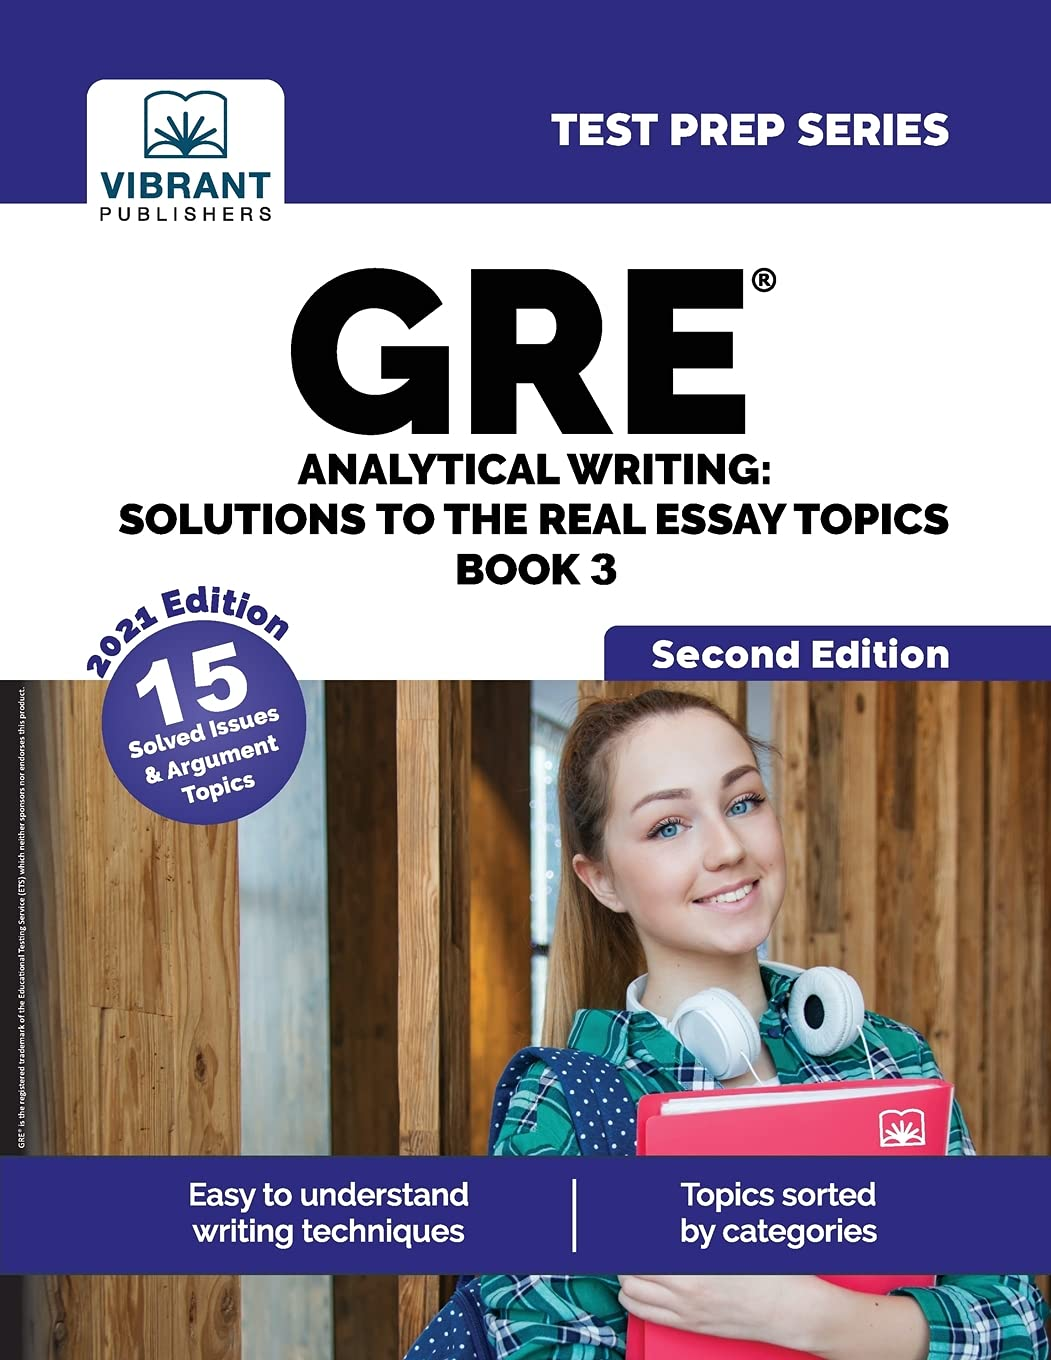 GRE Analytical Writing: Solutions to the Real Essay Topics – Book 3: Solutions to the Real Essay Topics – Book 3 (Second Edition) (Test Prep Series)